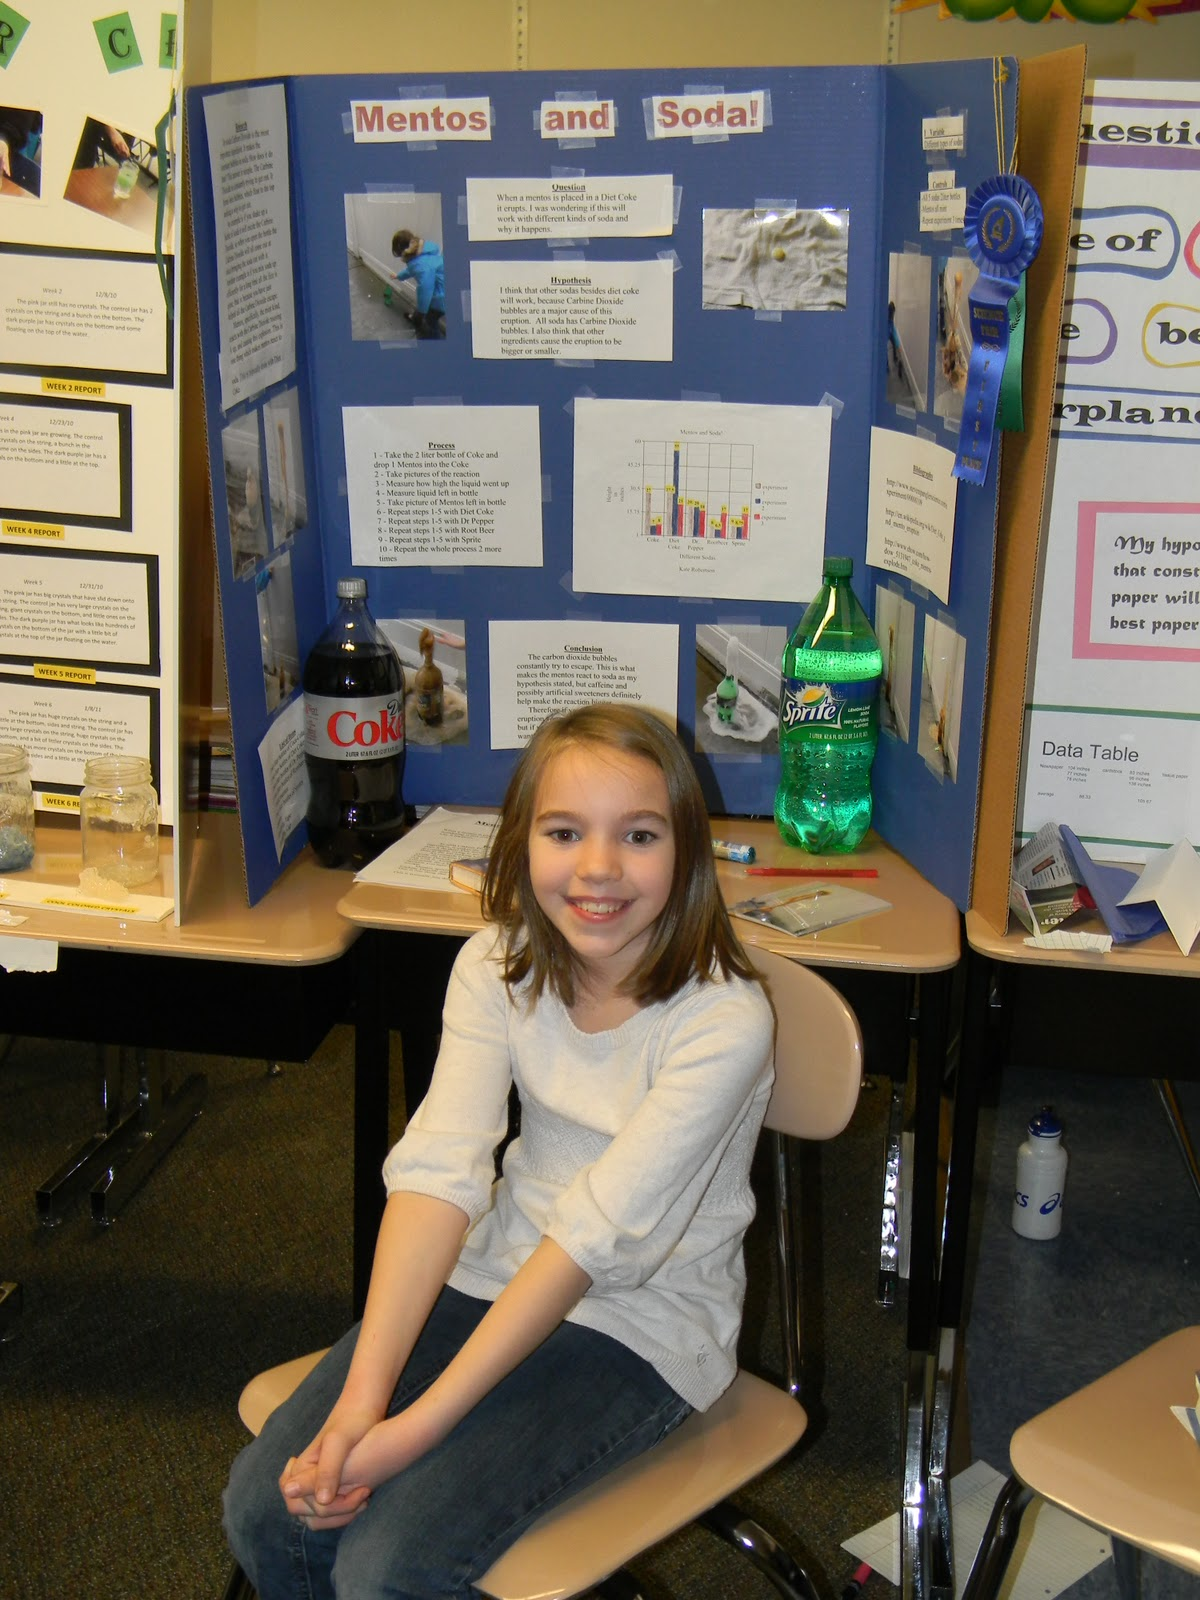 coke and mentos science fair project Science experiment mentos fun this science experiment using mentos candy and diet coke is a classic it is fun and can be used as an experiment or science fair project.